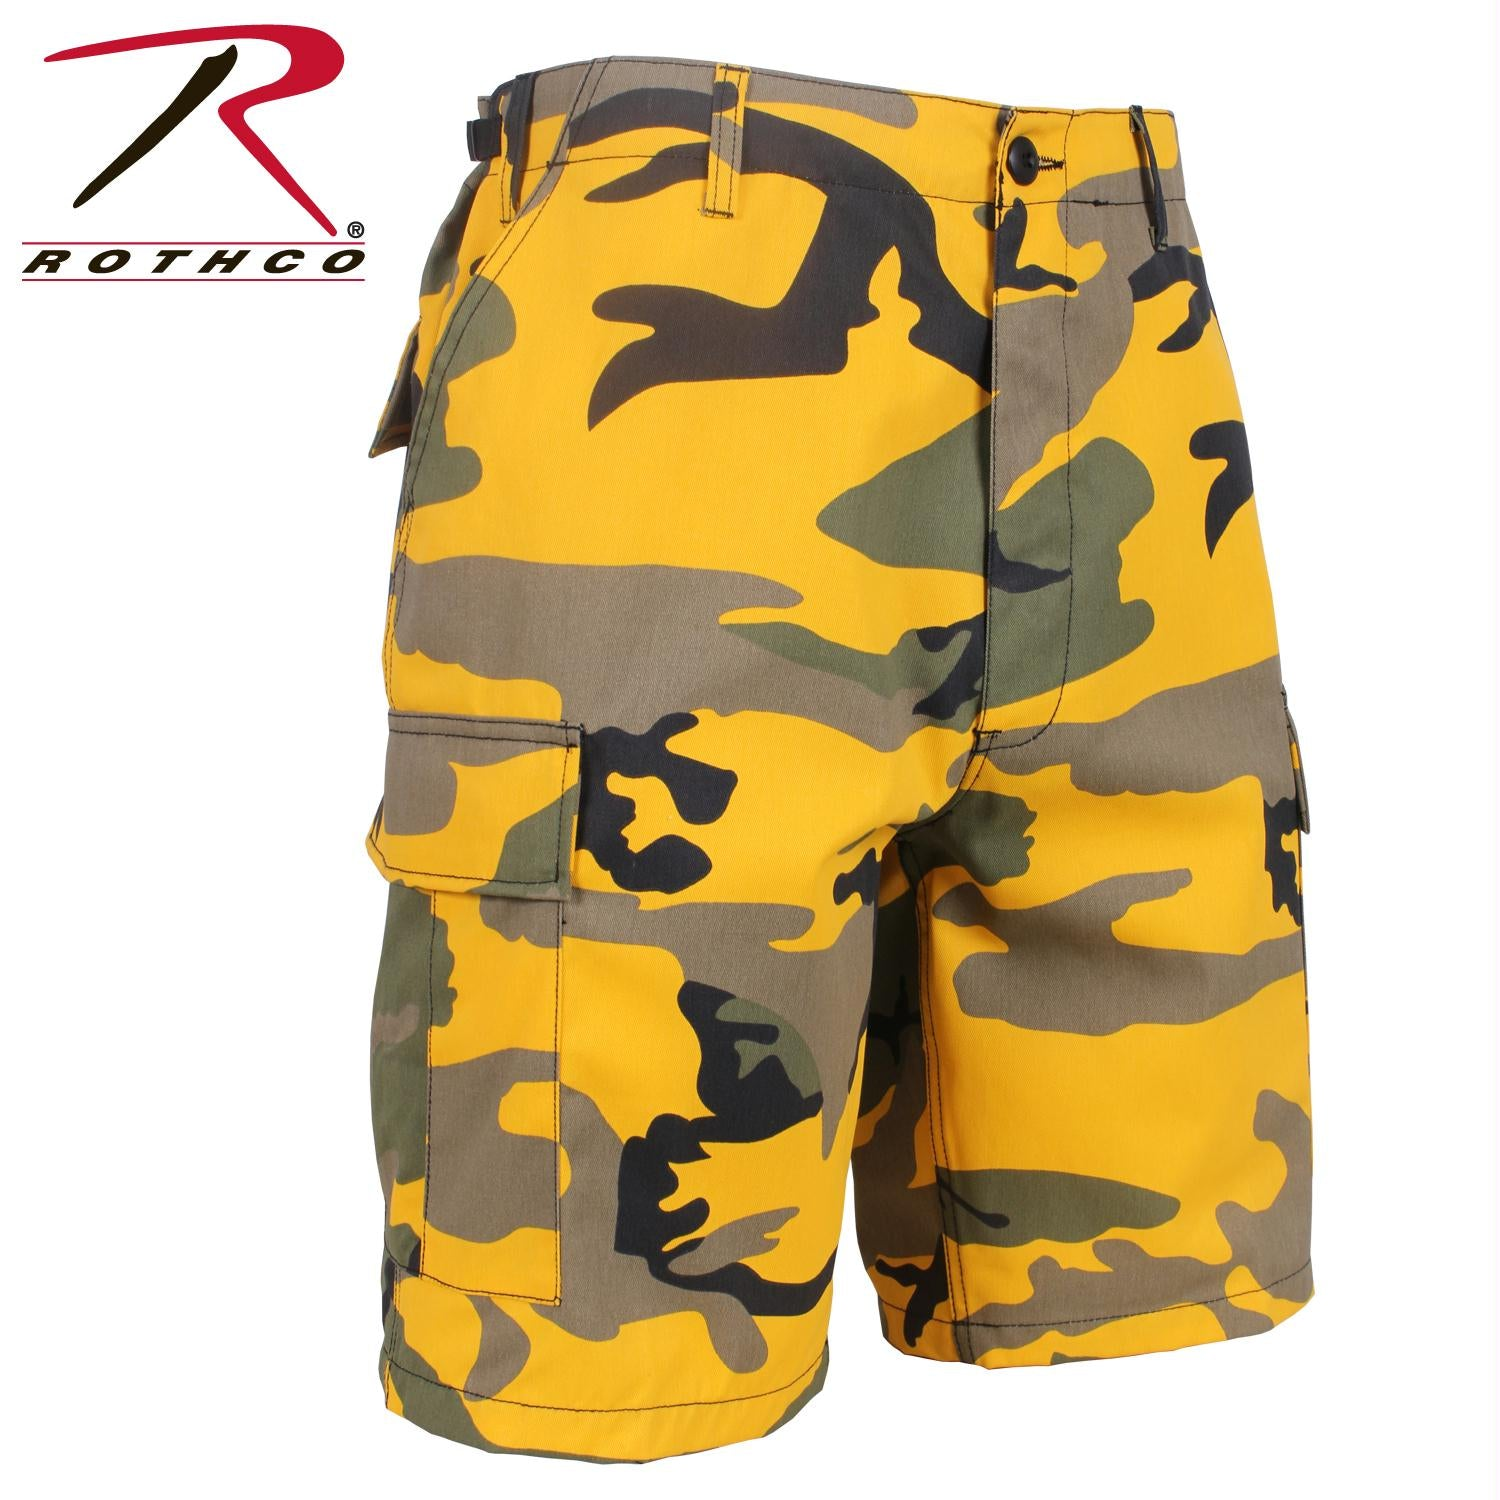 Rothco Colored Camo BDU Shorts - Stinger Yellow Camo / XL